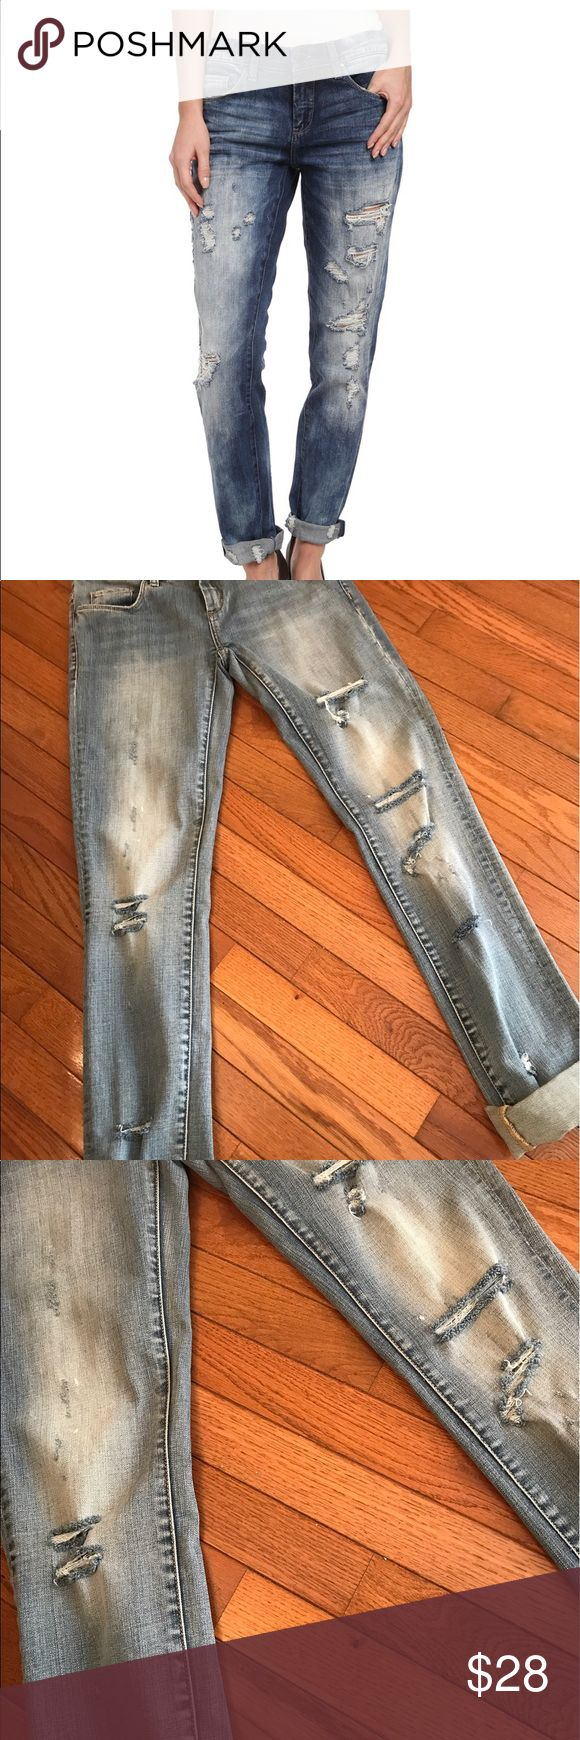 "BLANK Distressed Slim Fit Boyfriend Jeans 👖 These are great because they can really be converted from boyfriend jeans to normal straight leg jeans, depending on your desired look and fit. For boyfriend jeans they are more of a slim fit boyfriend, roll cuffs up for boyfriend look, keep down and you have a normal pair of distressed, both front & back, see pics, medium/light wash jeans. I think they fit true to a size 25, which is a little small for me, with waist being 15"" lying flat and a…"